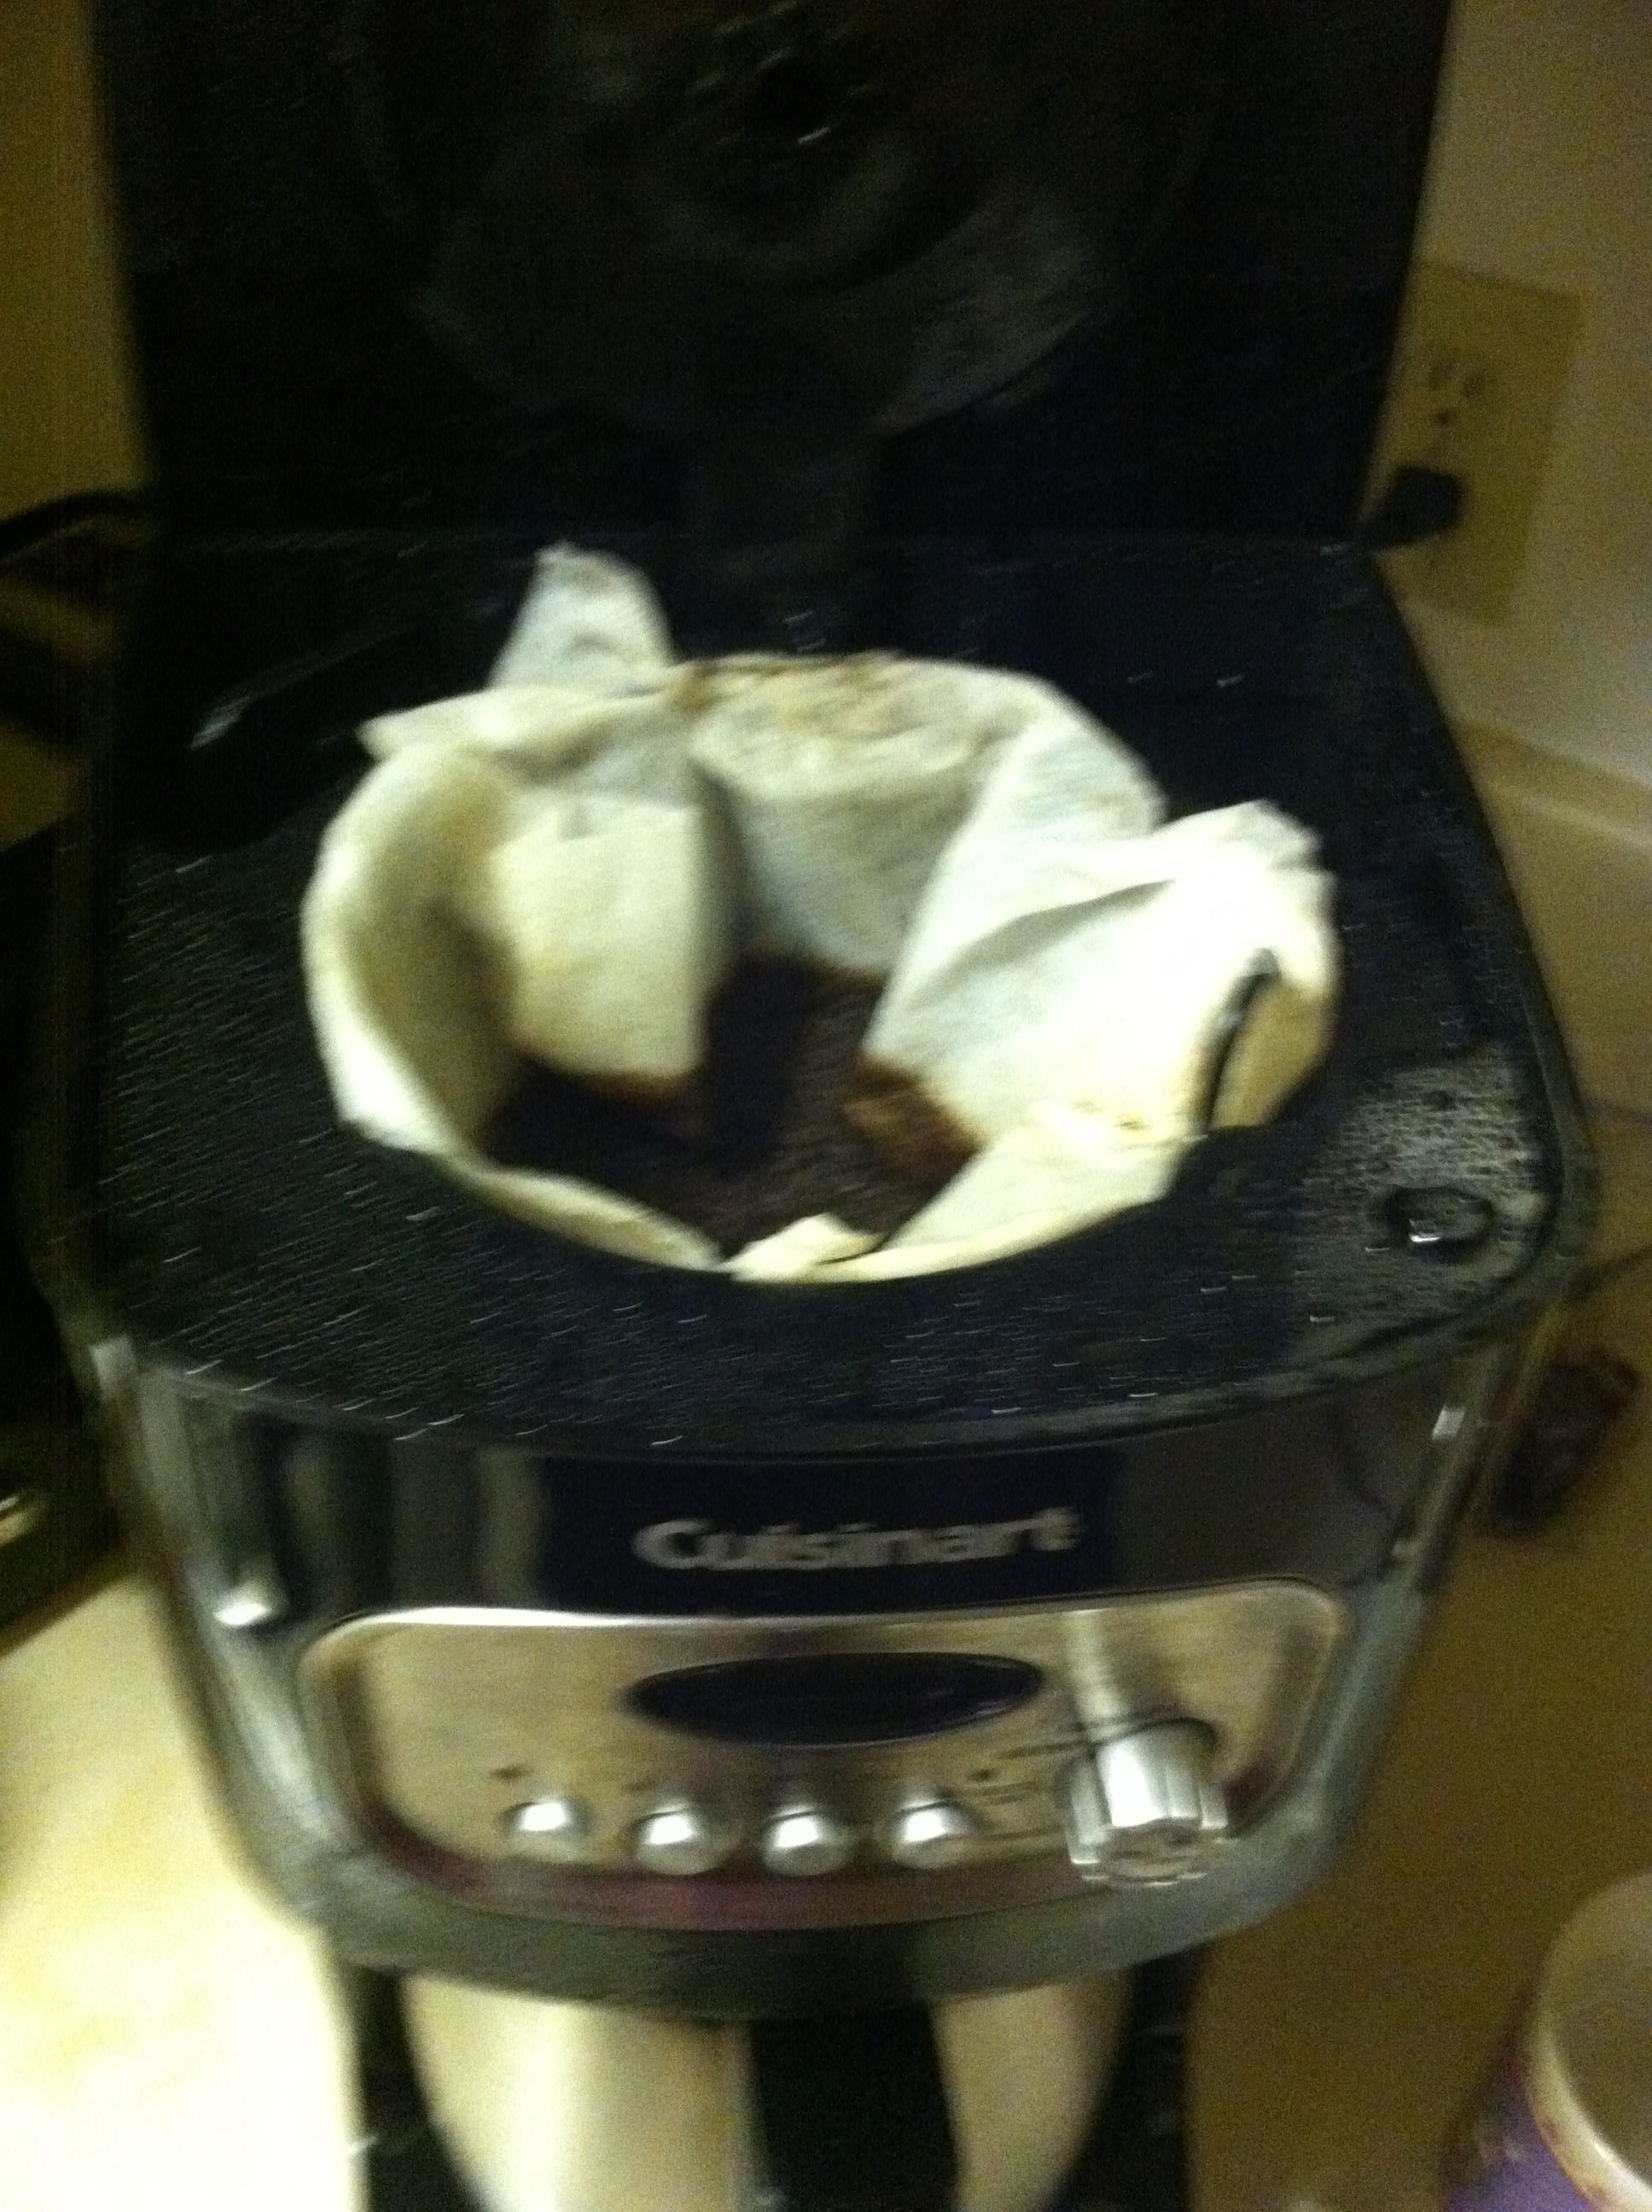 bounty paper towel as coffee filter